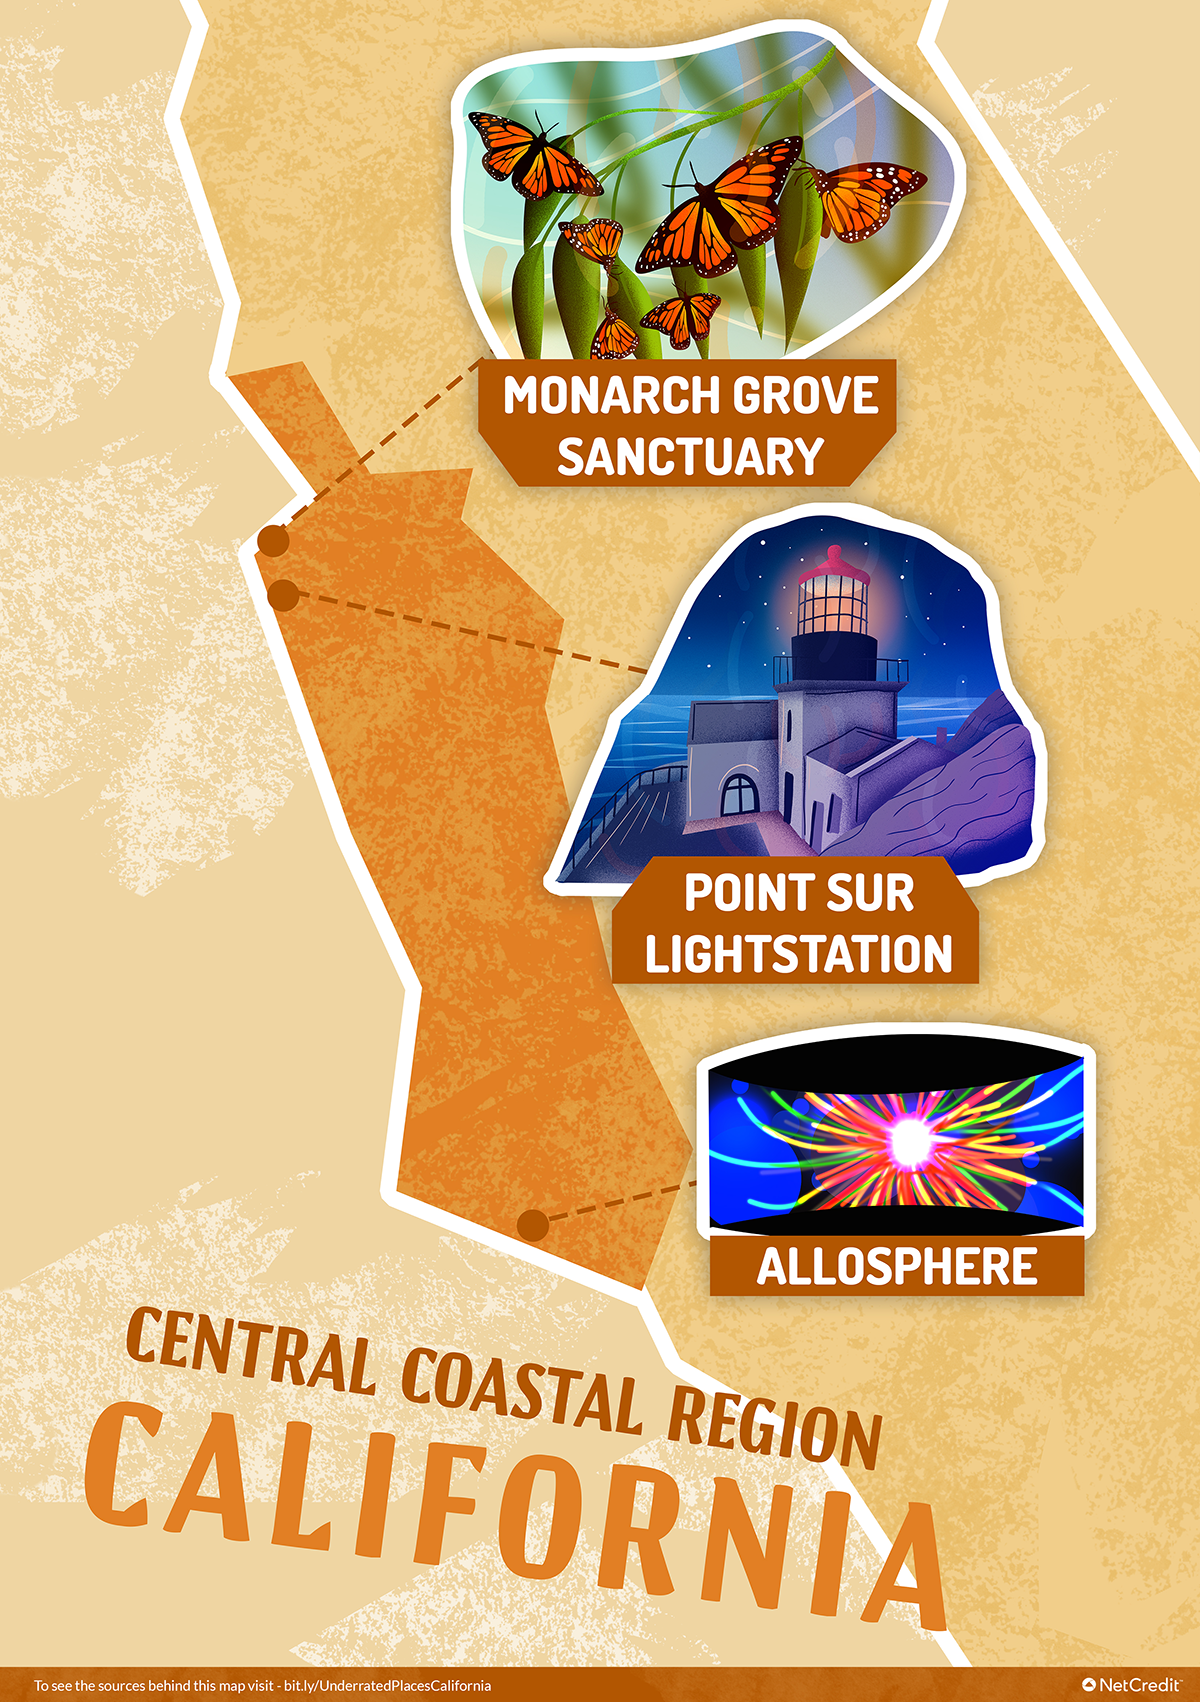 Outline of California's coastal region pointing out specific places that are worth a visit